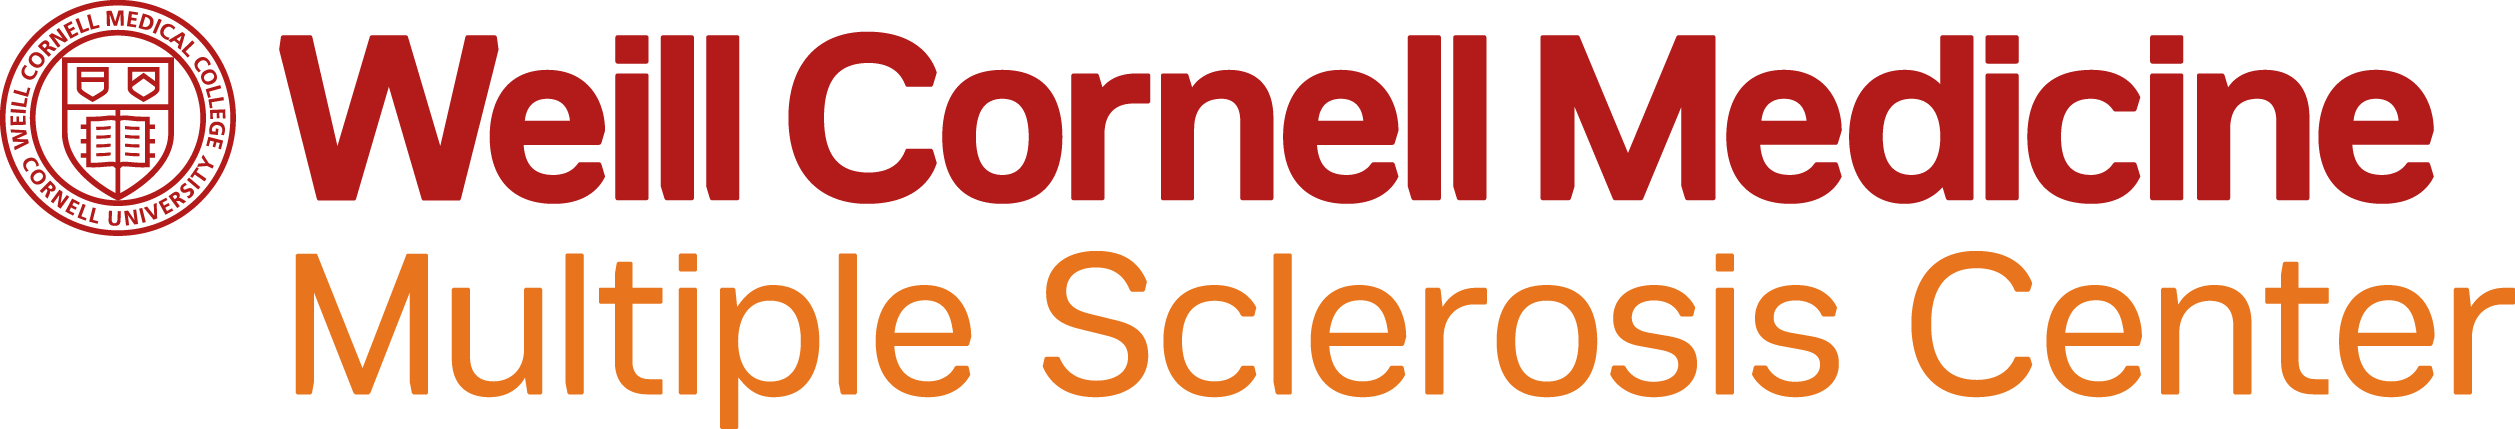 Weill Cornell Medicine Multiple Sclerosis Center